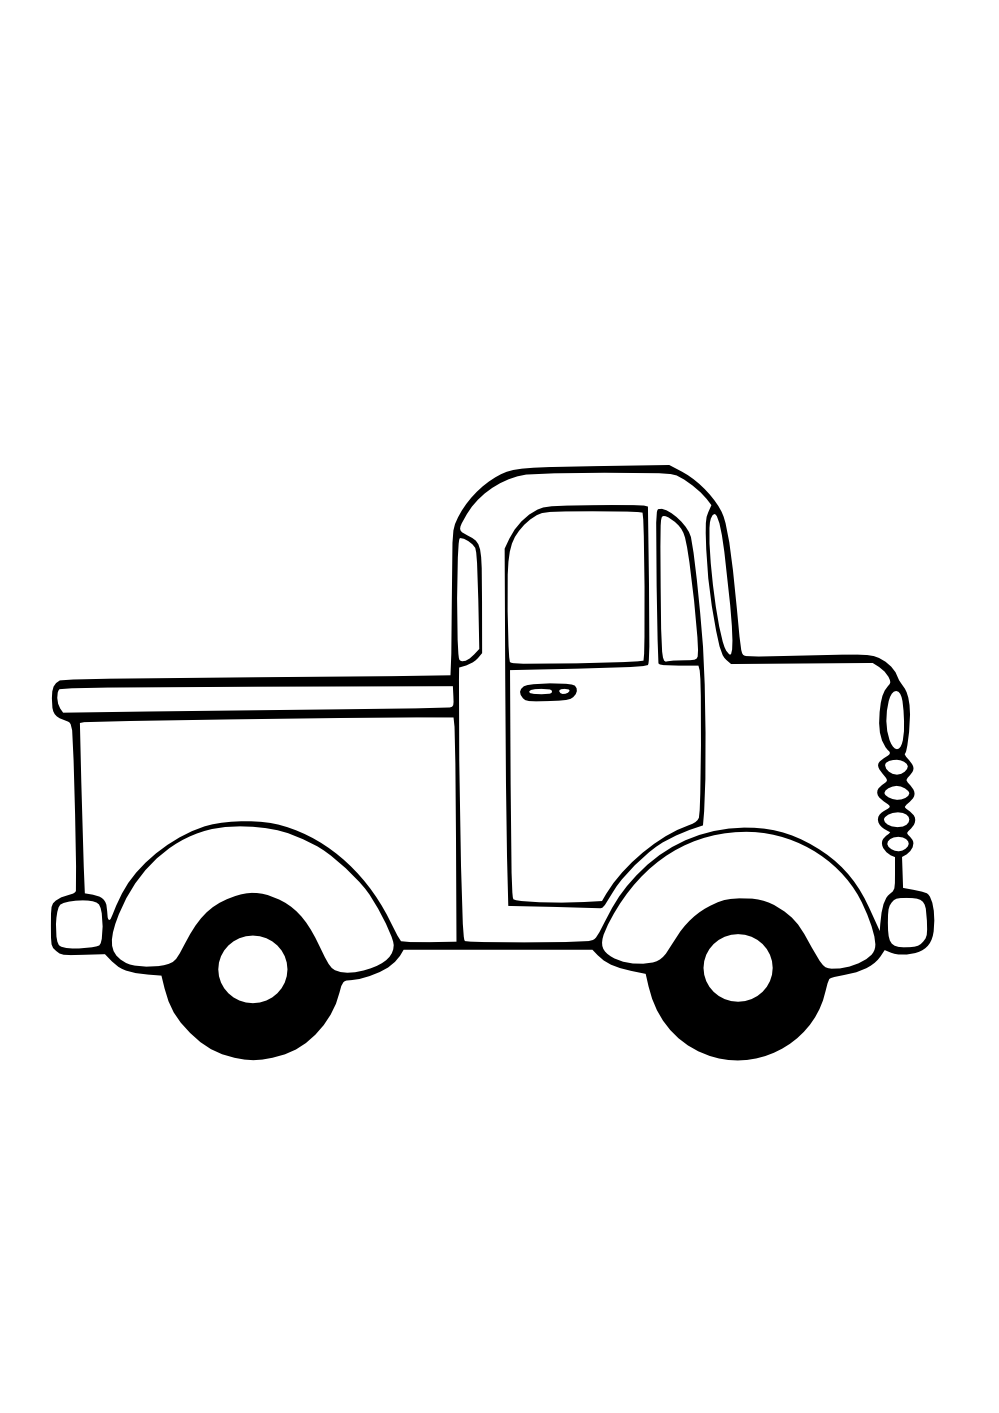 truck clipart black and white clipart panda free clipart images [ 999 x 1413 Pixel ]